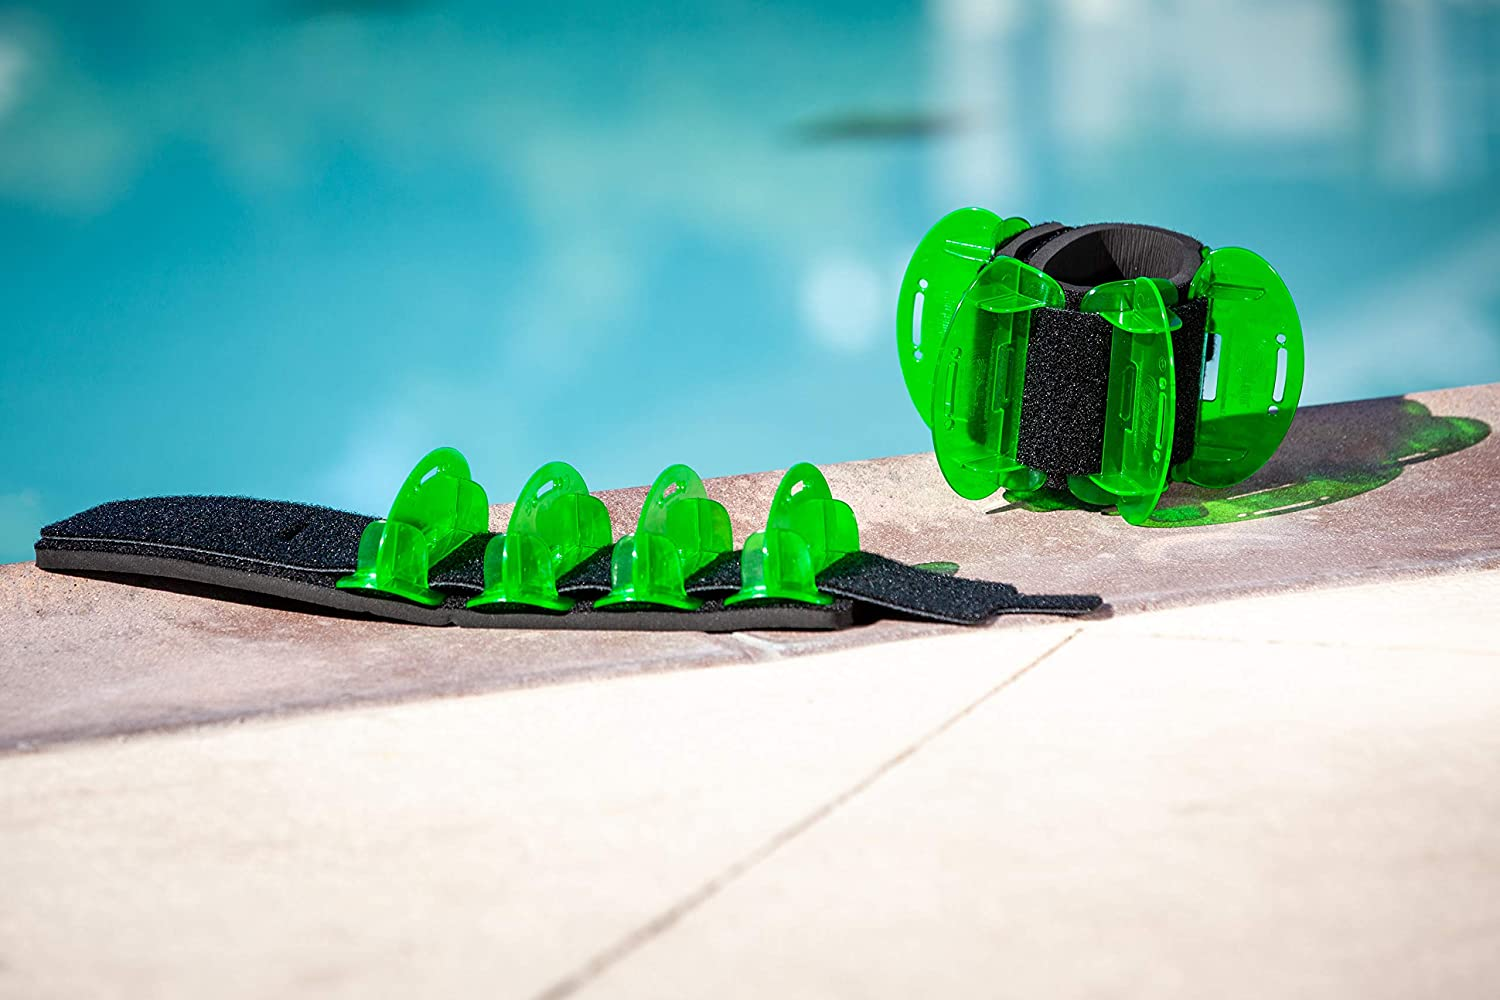 Pair AquaLogix Low Resistance High Speed Hybrid Aquatic Training Fin LRPCFIN Green Includes Online Access Demonstration Video /& Workout Program